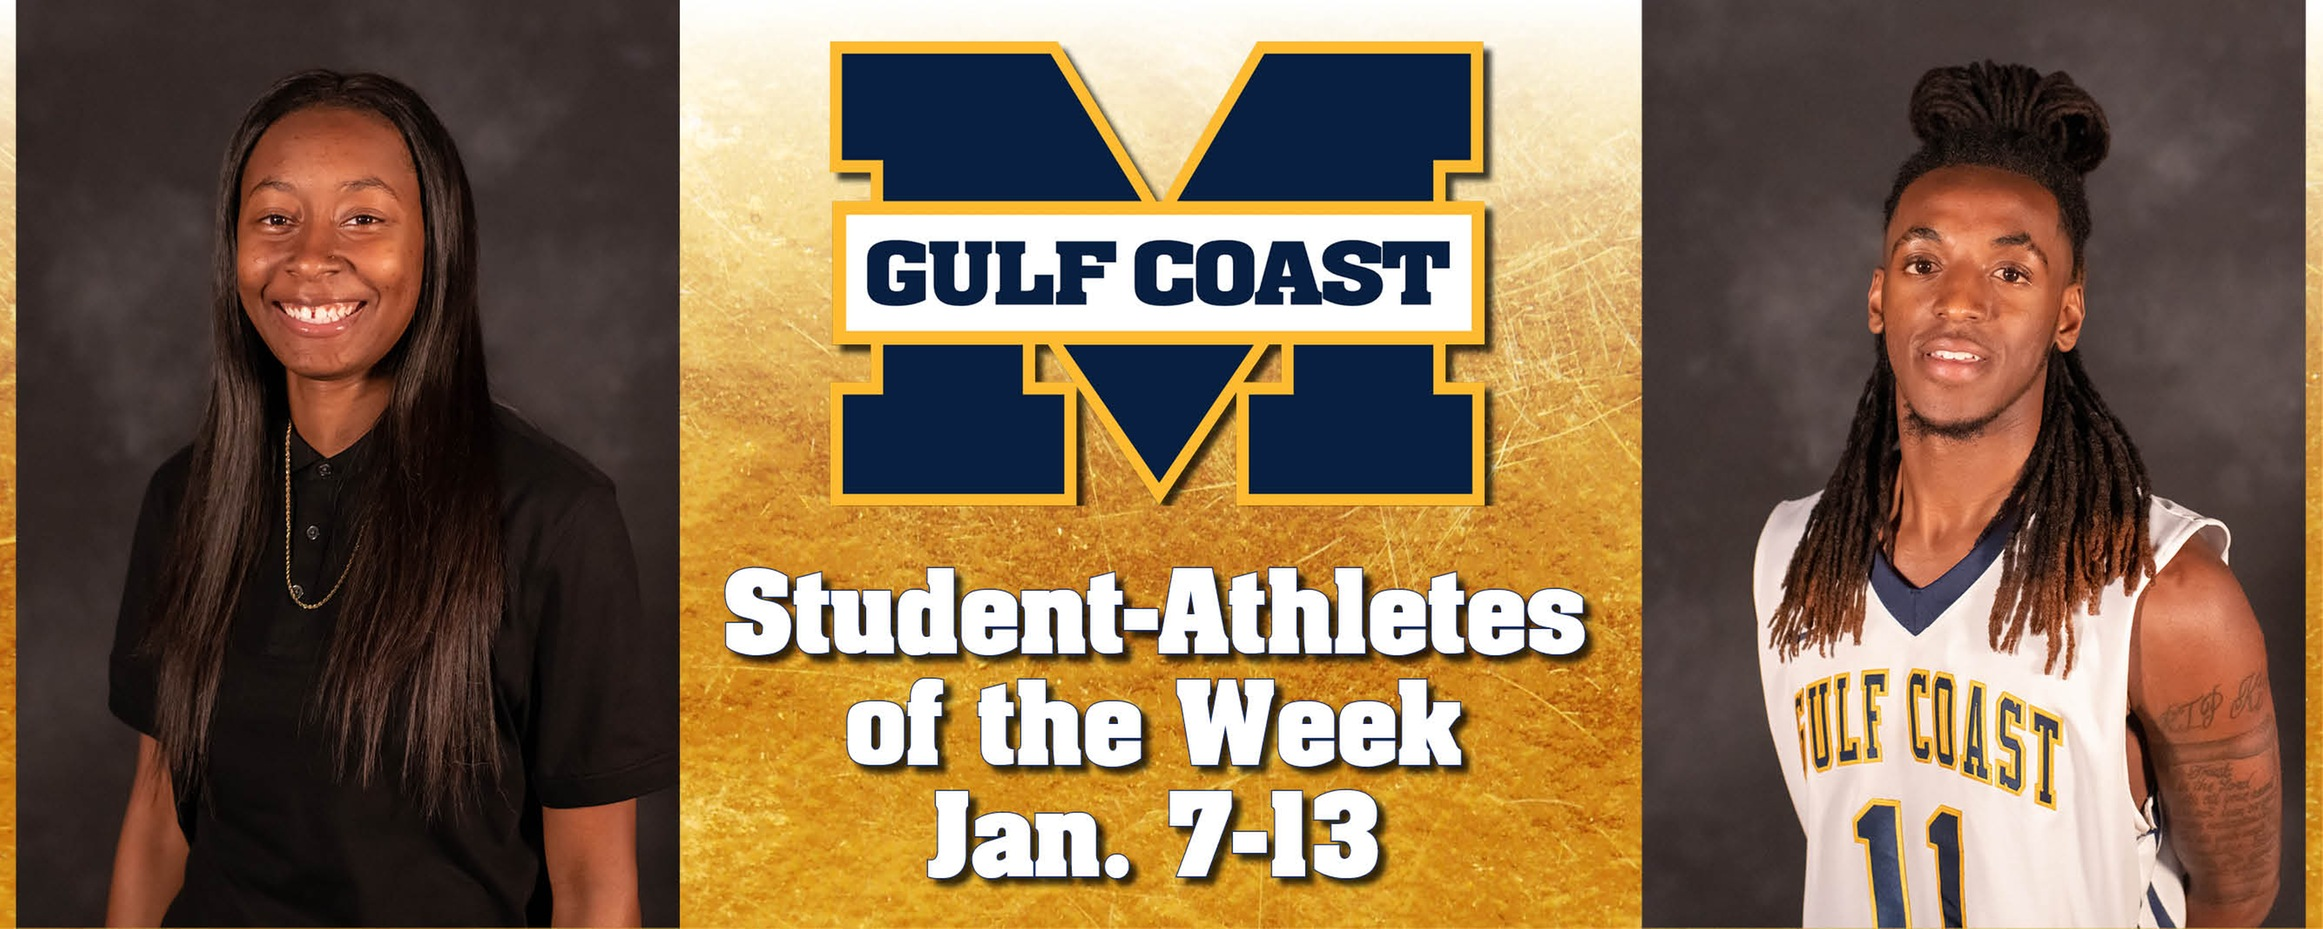 McCullah, Spivery named MGCCC Student-Athletes of the Week